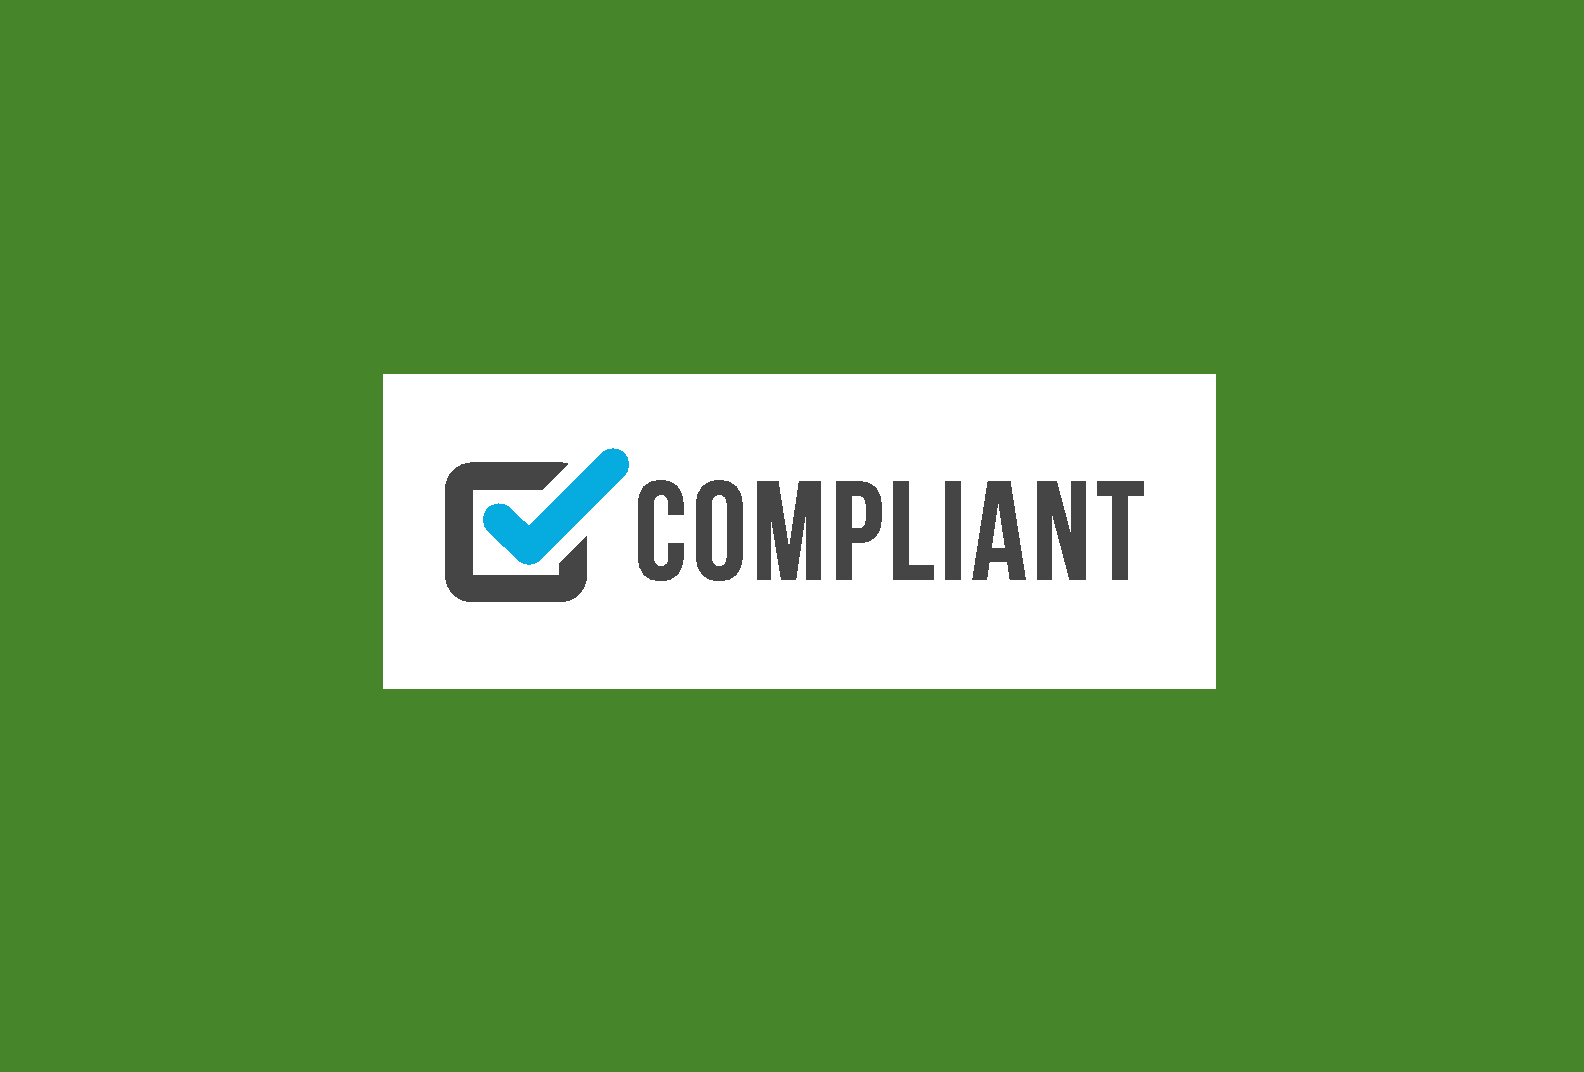 Is Your Accounts Department Fully Compliant?